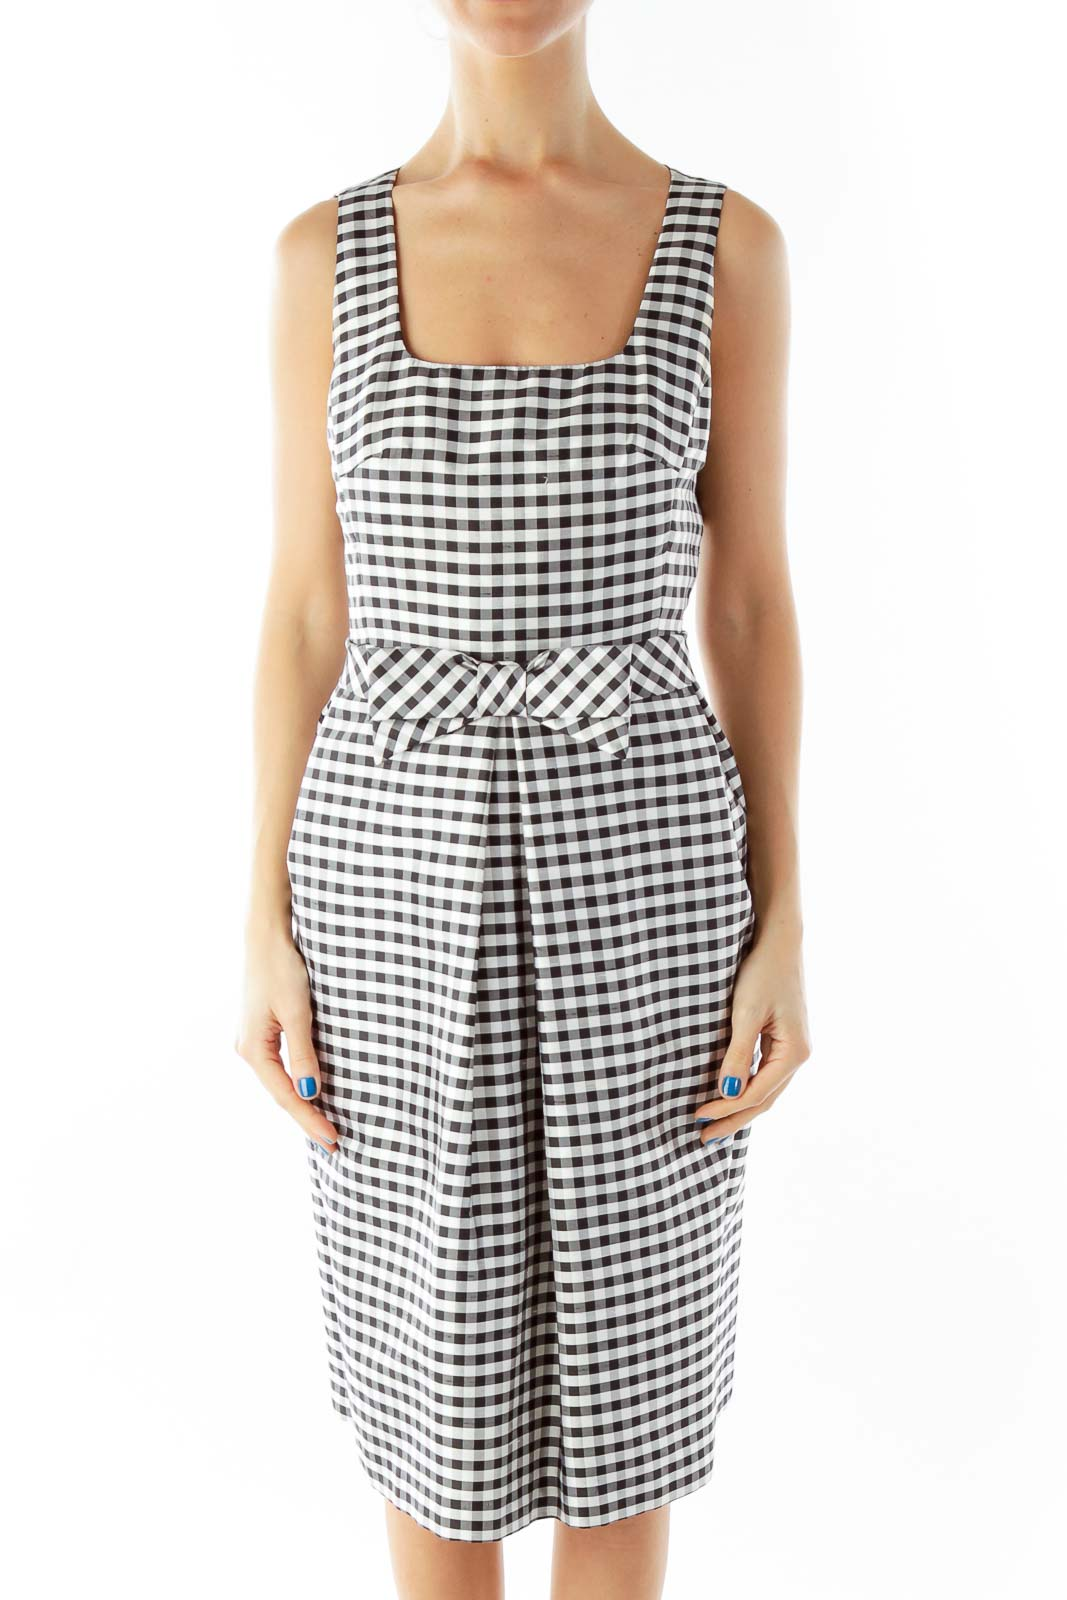 Black White Gingham Dress